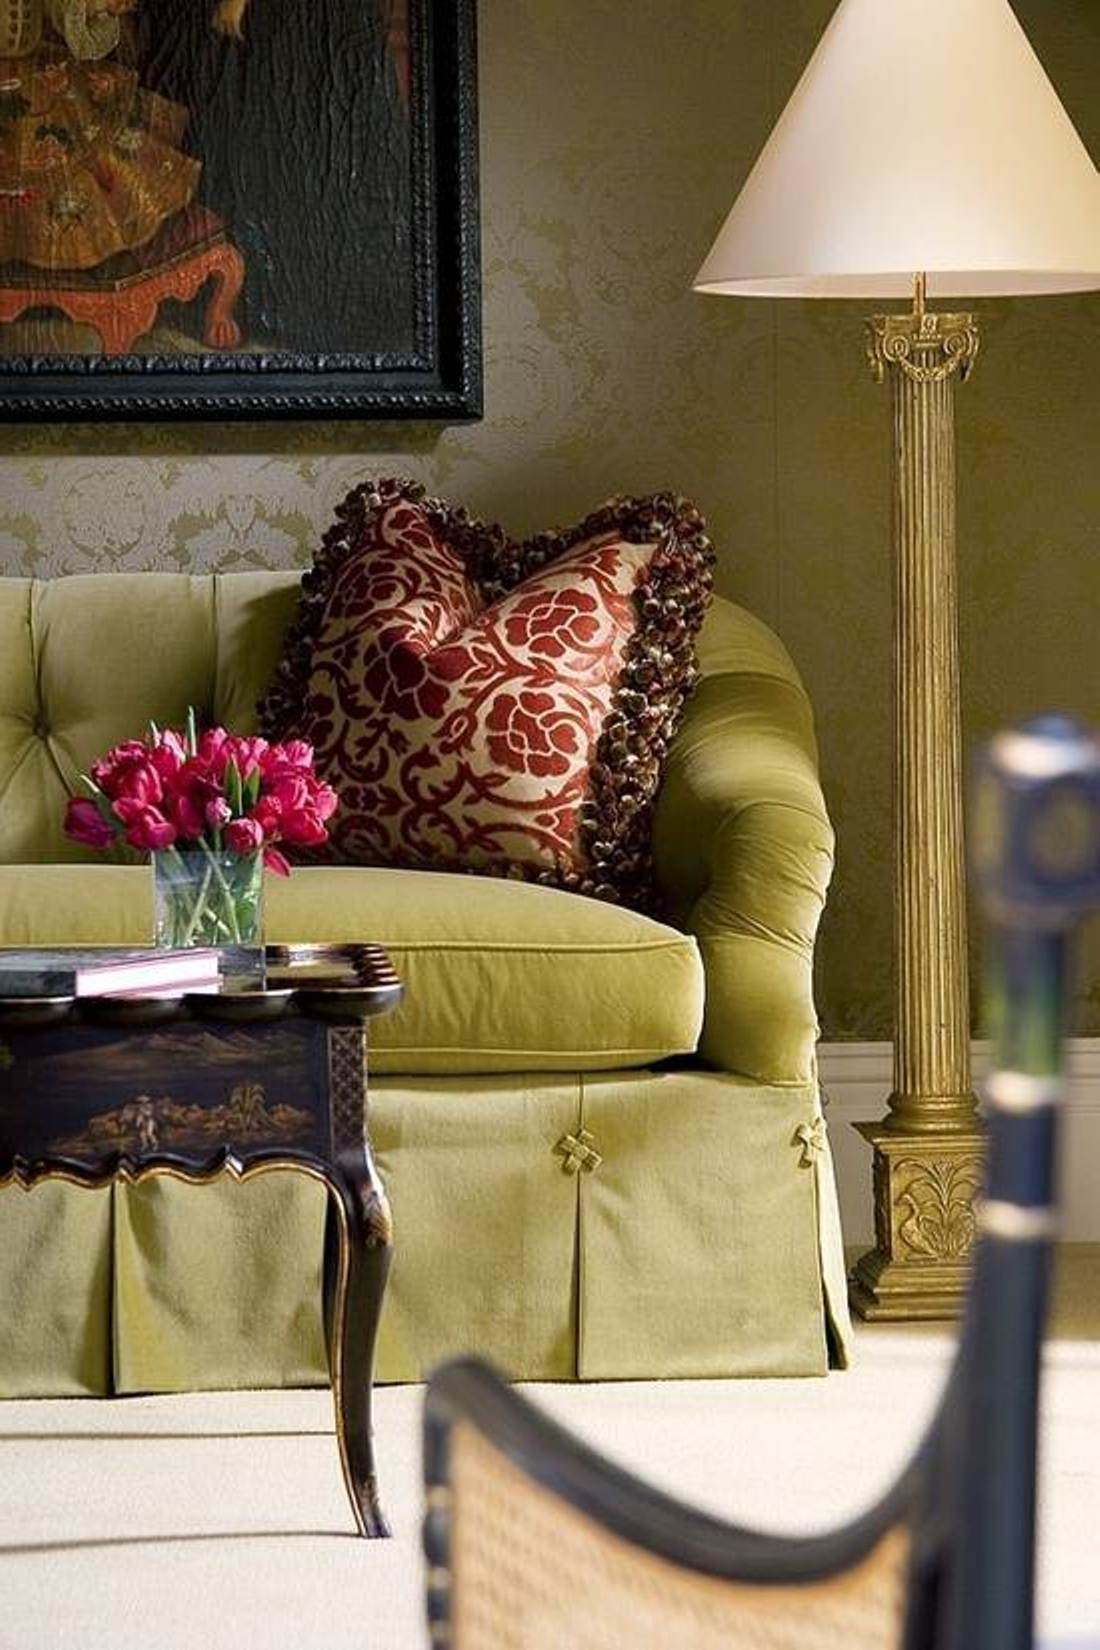 Best ideas about Living Room Chair Covers . Save or Pin Updated Look with Living Room Chair Covers Now.